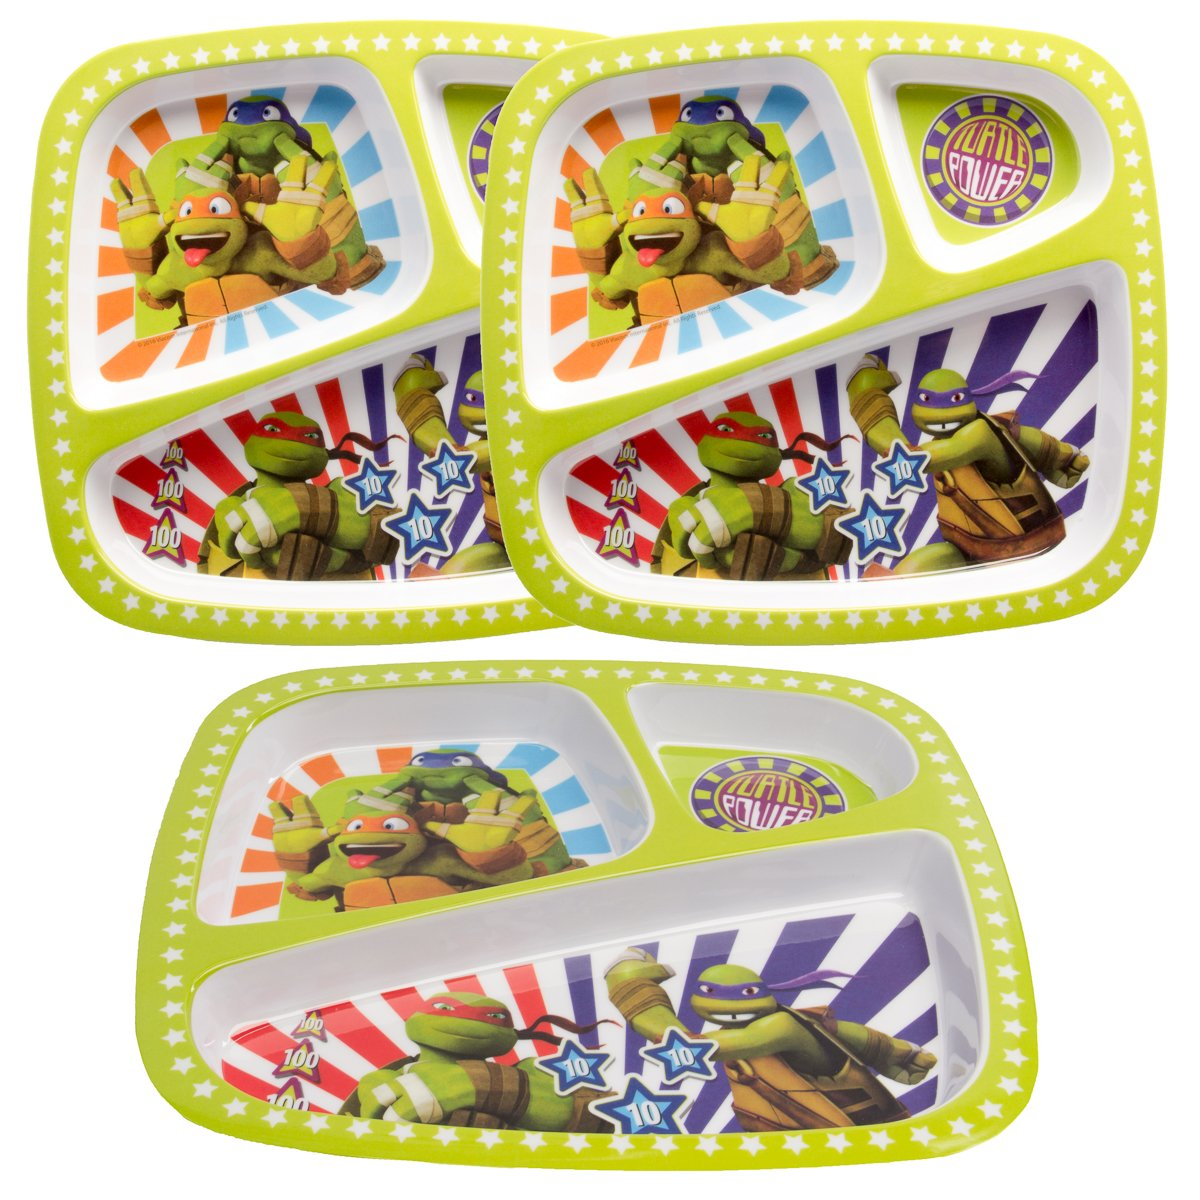 Zak! (3 Pack) Kids Teenage Mutant Ninja Turtles 3-Section Divided Compartment Plates TMNT Dishwasher Safe